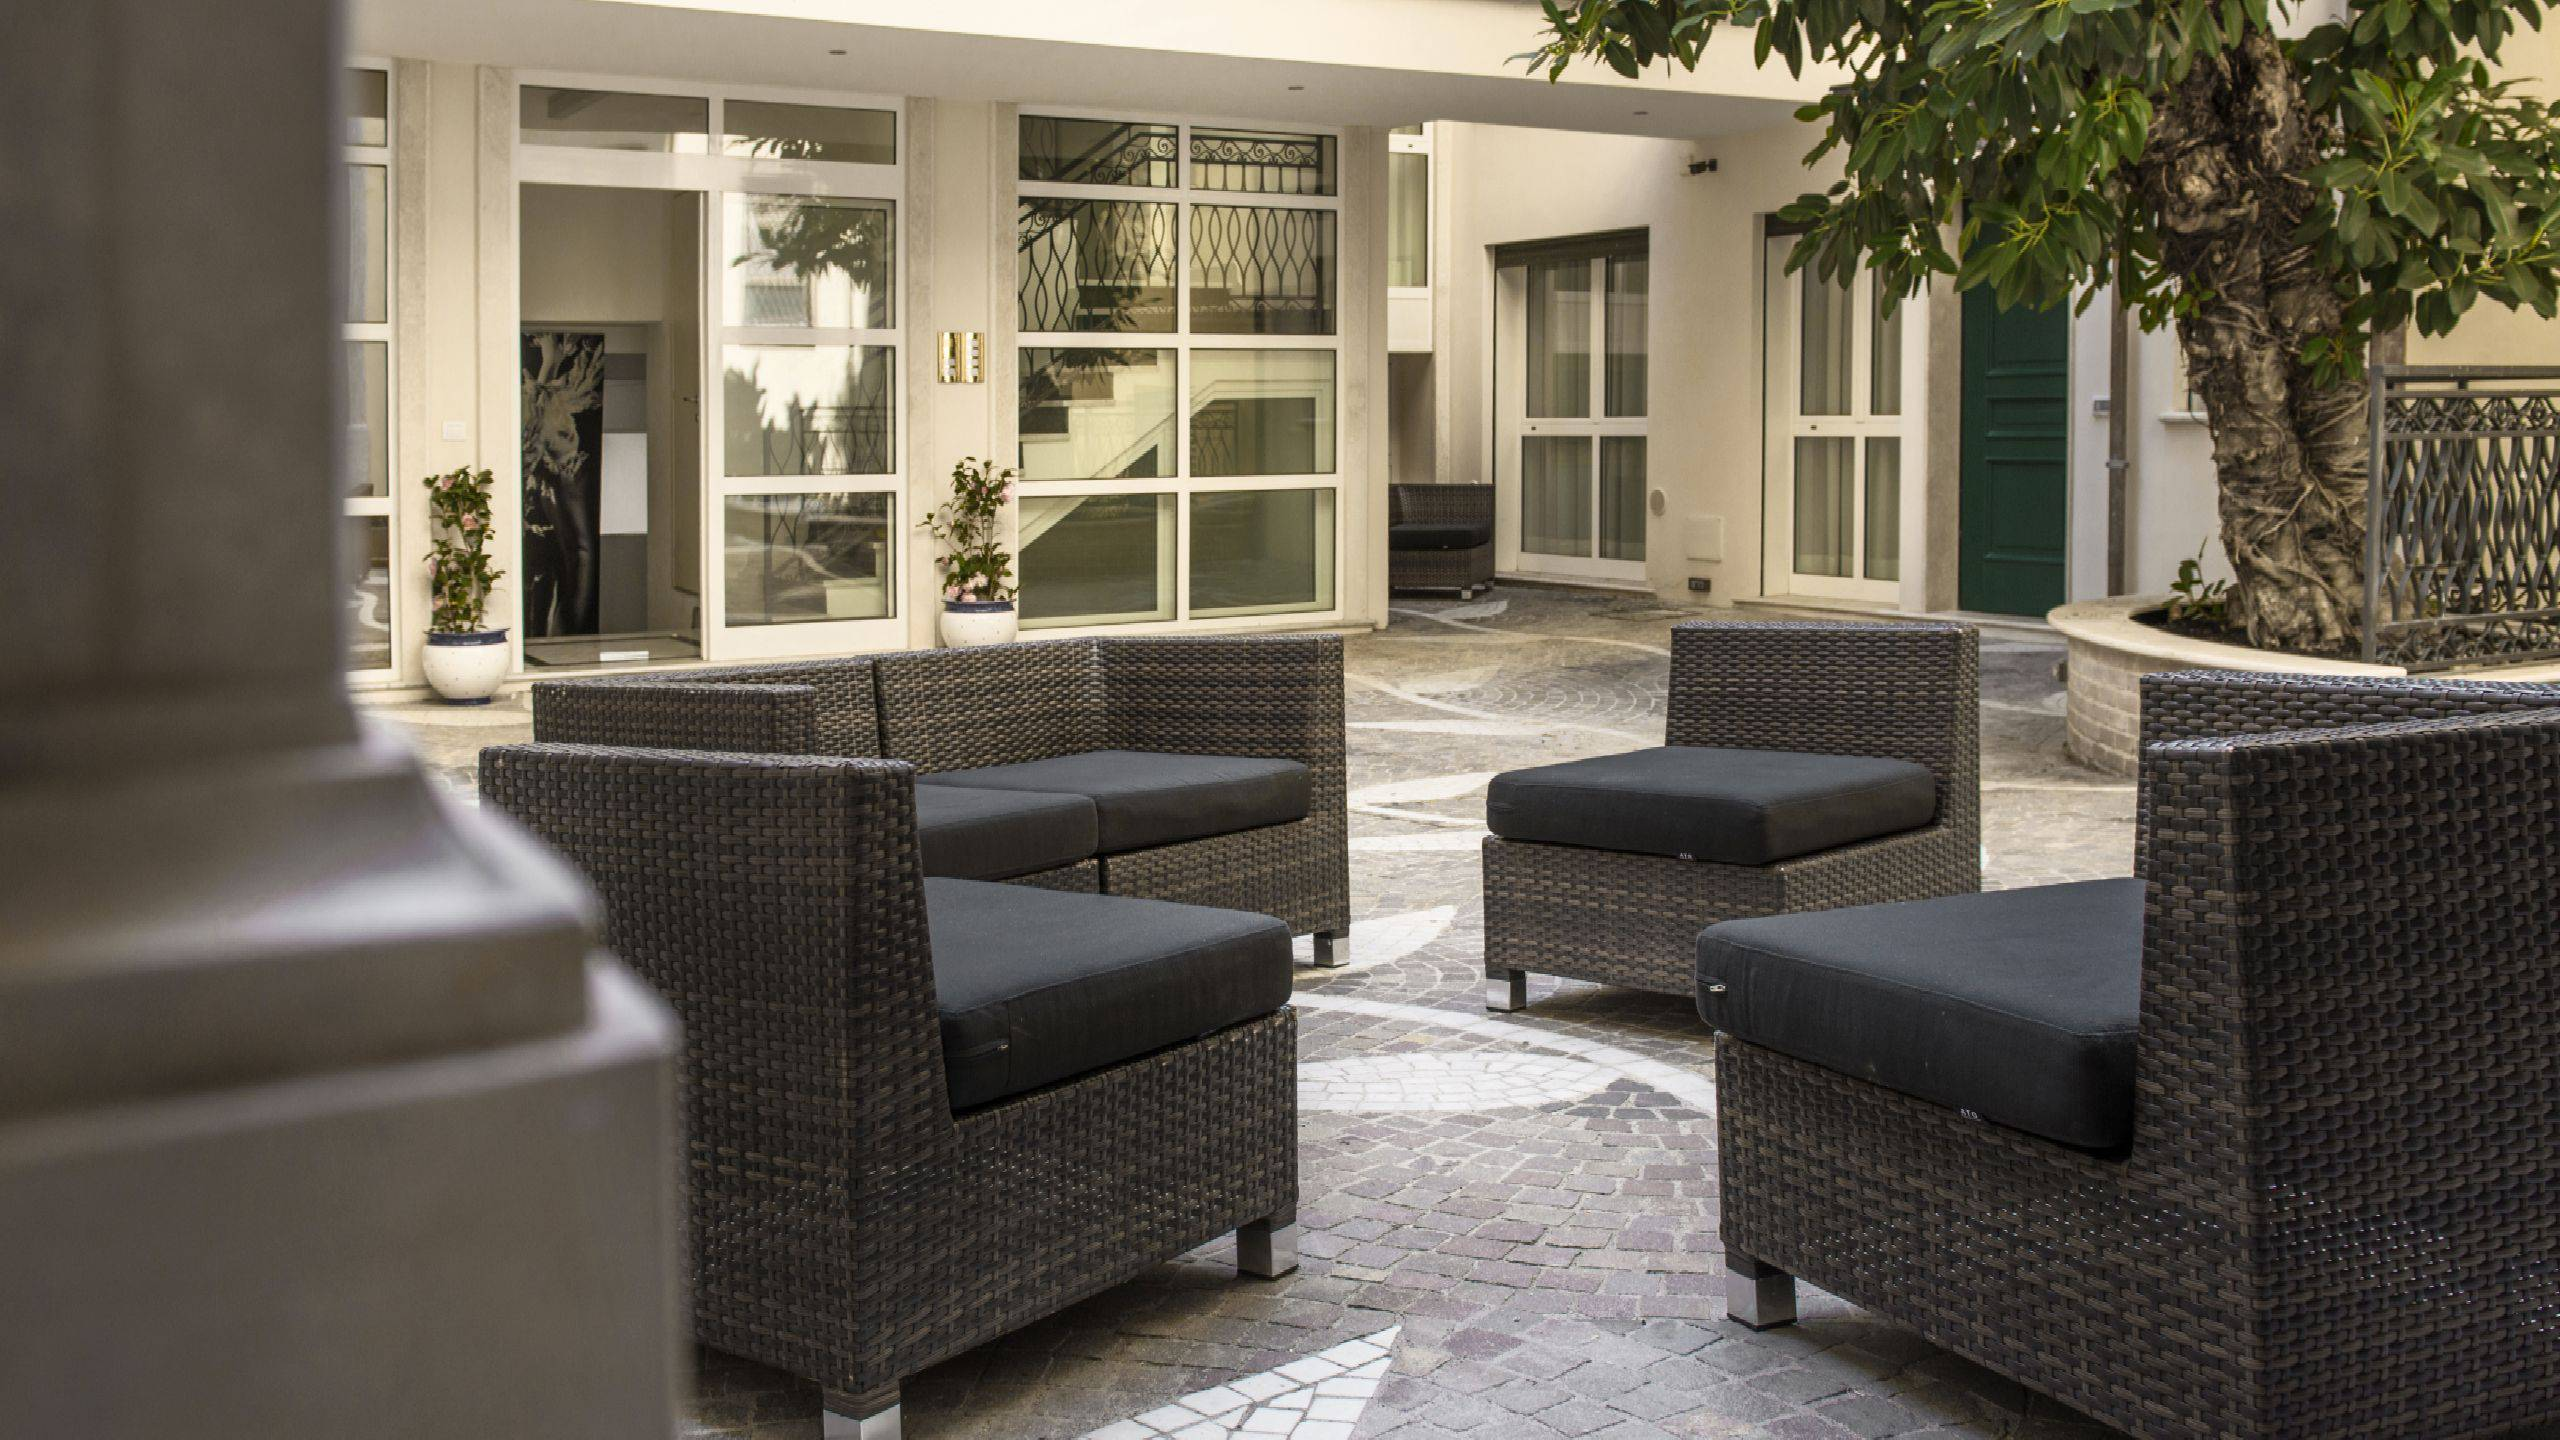 Morin-10-rome-Exclusive-Suites-rome-common-areas-armchairs-2214a